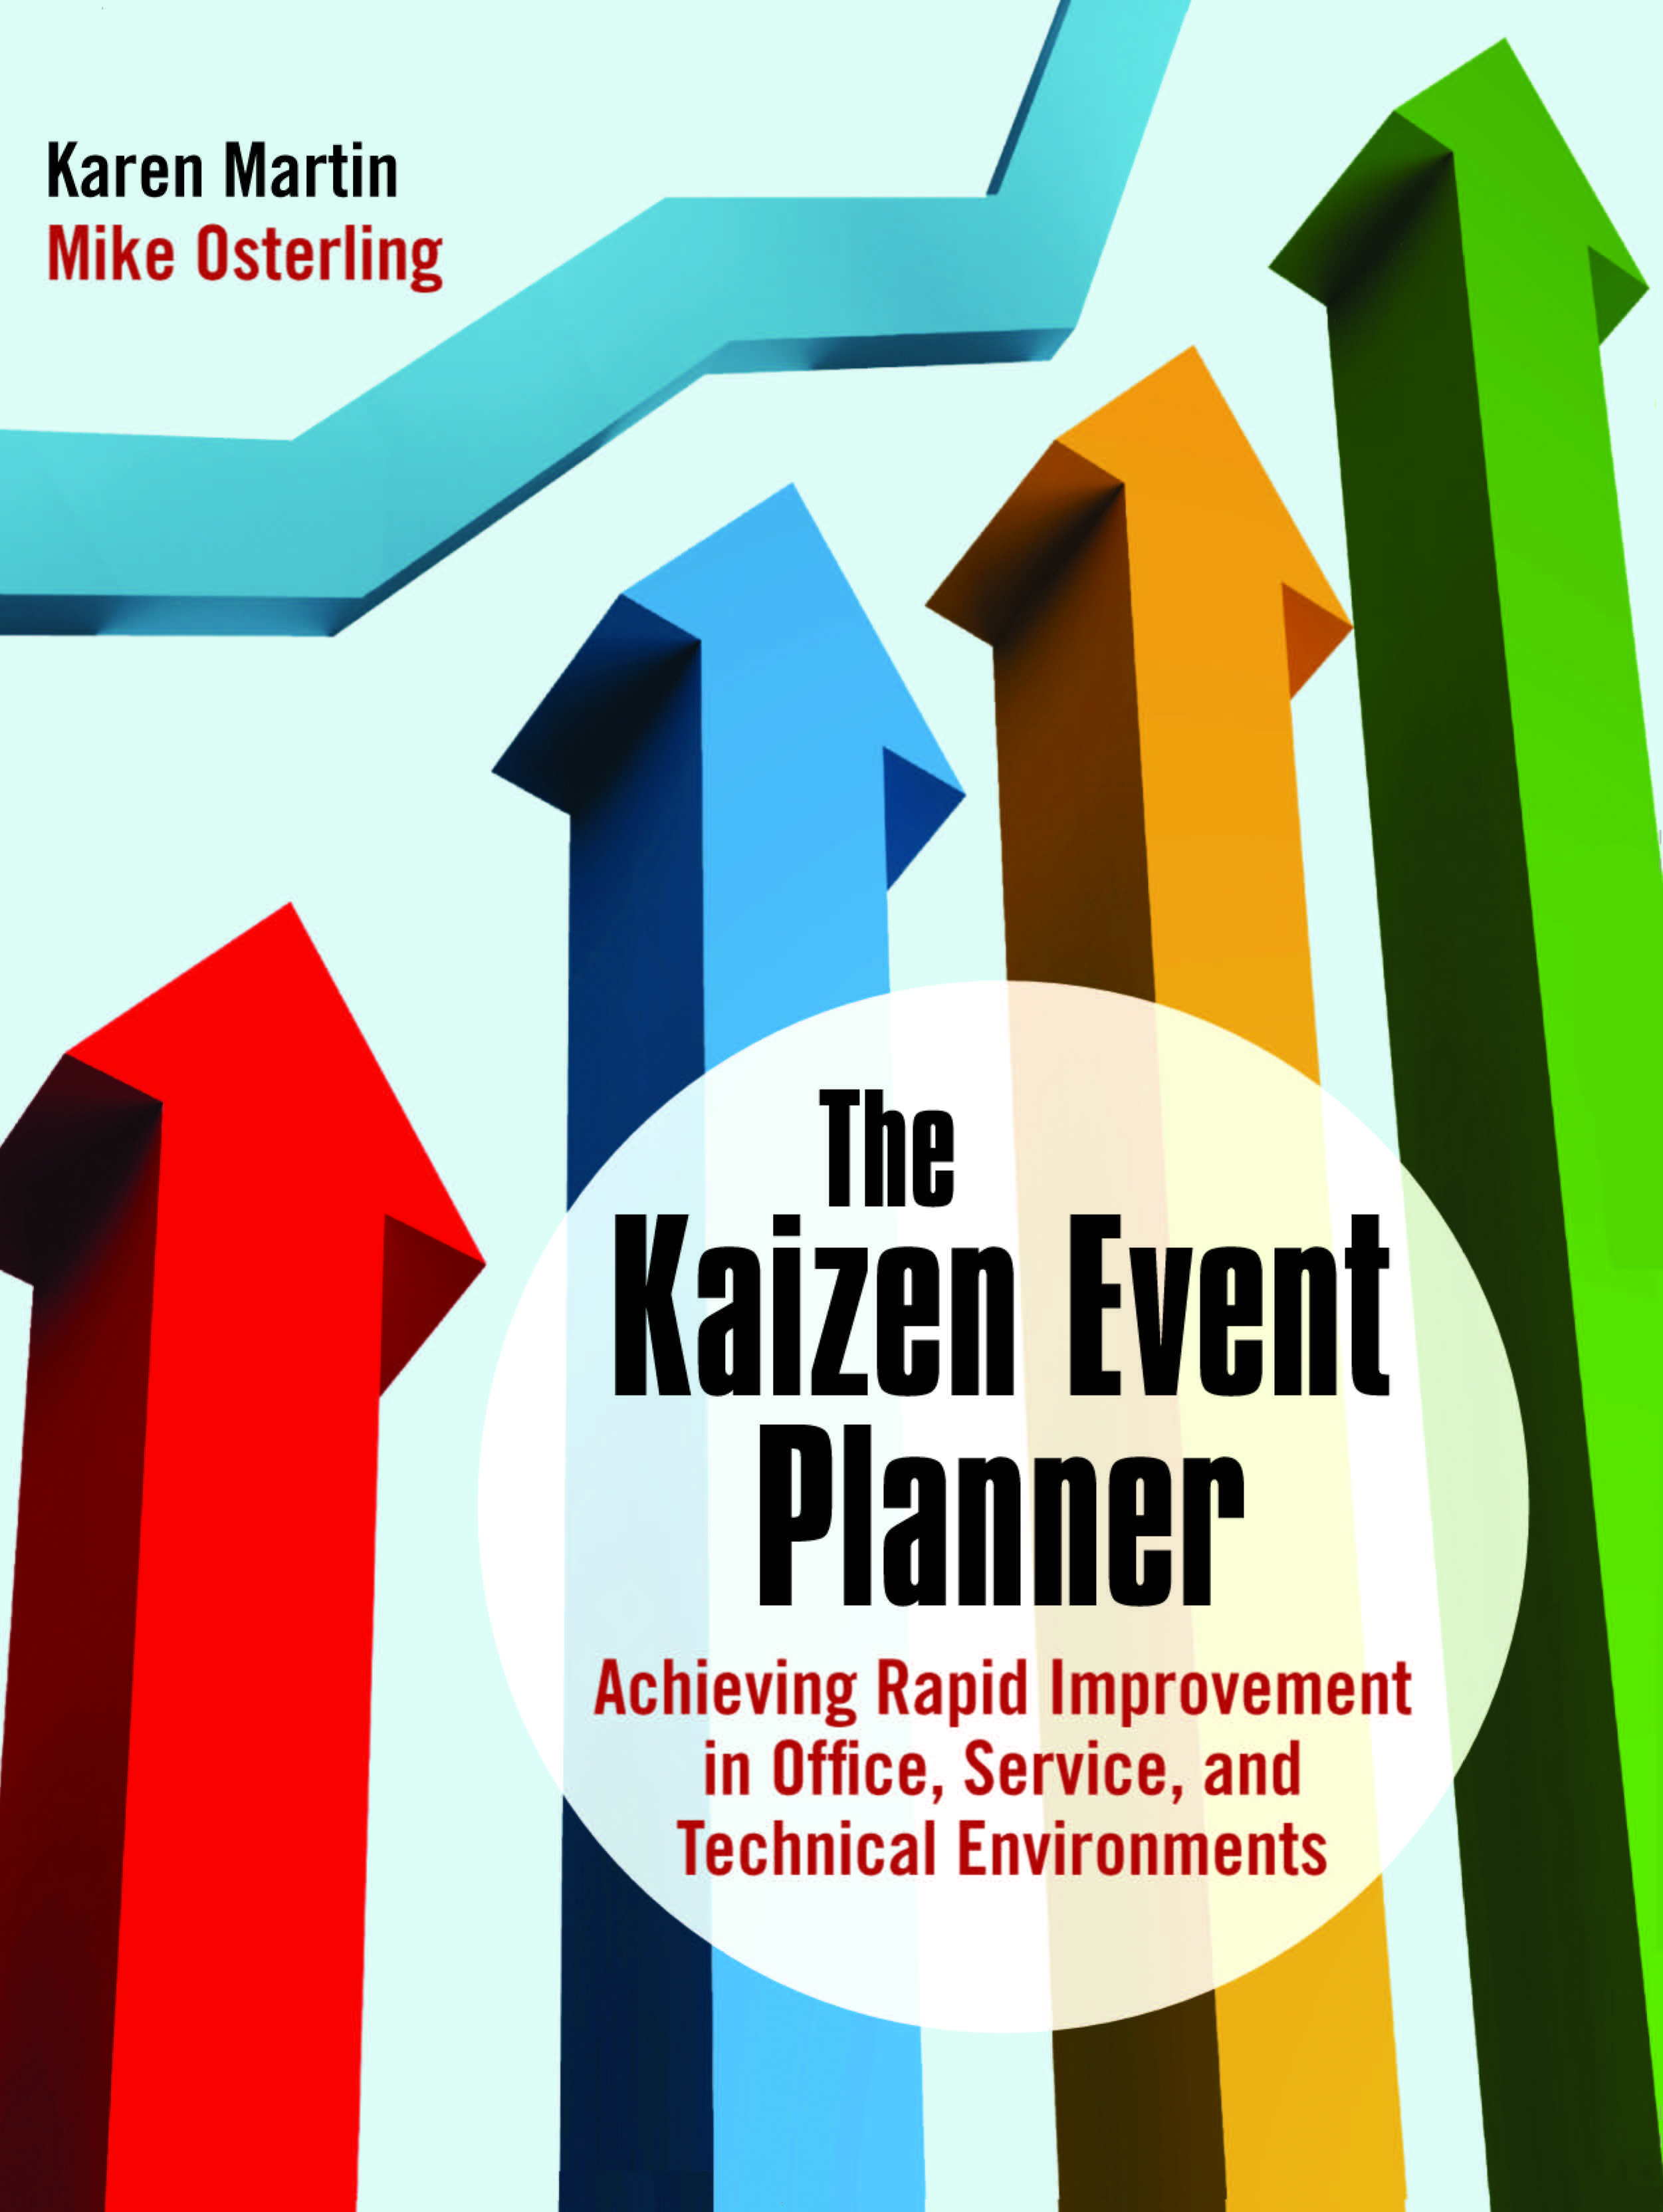 The Kaizen Event Planner: Achieving Rapid Improvement in Office